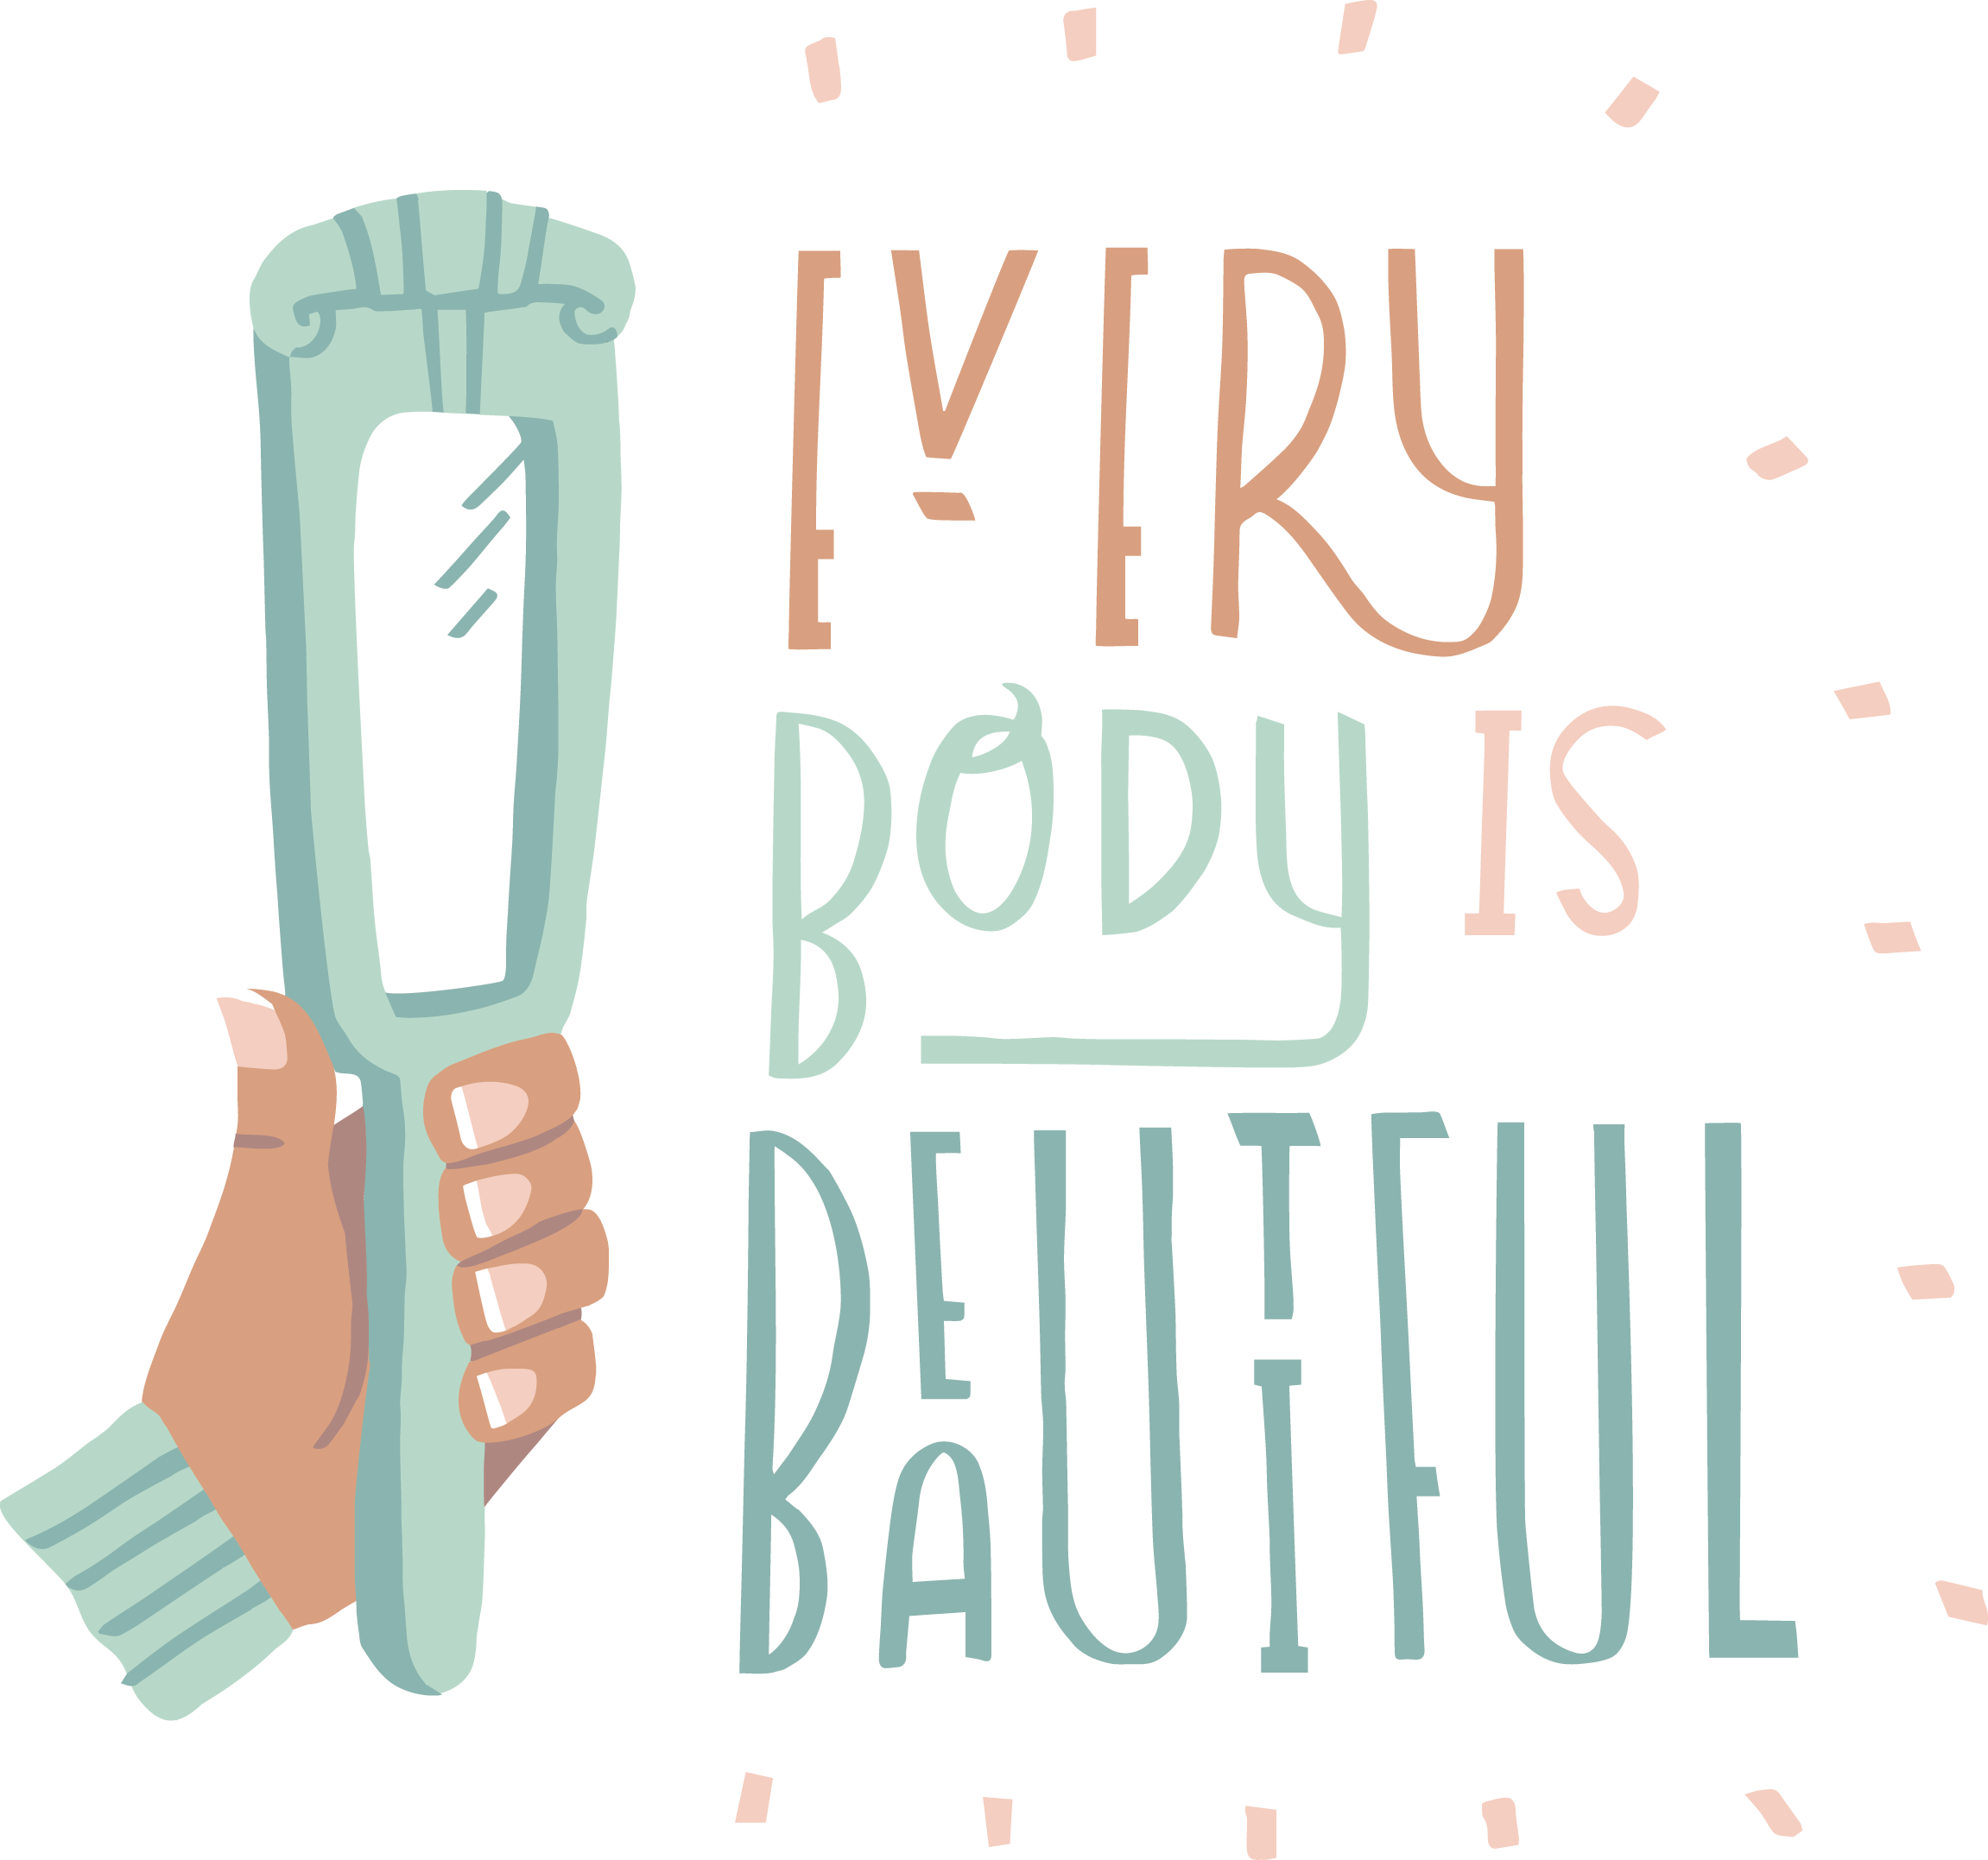 The Every Body Is Beautiful Project